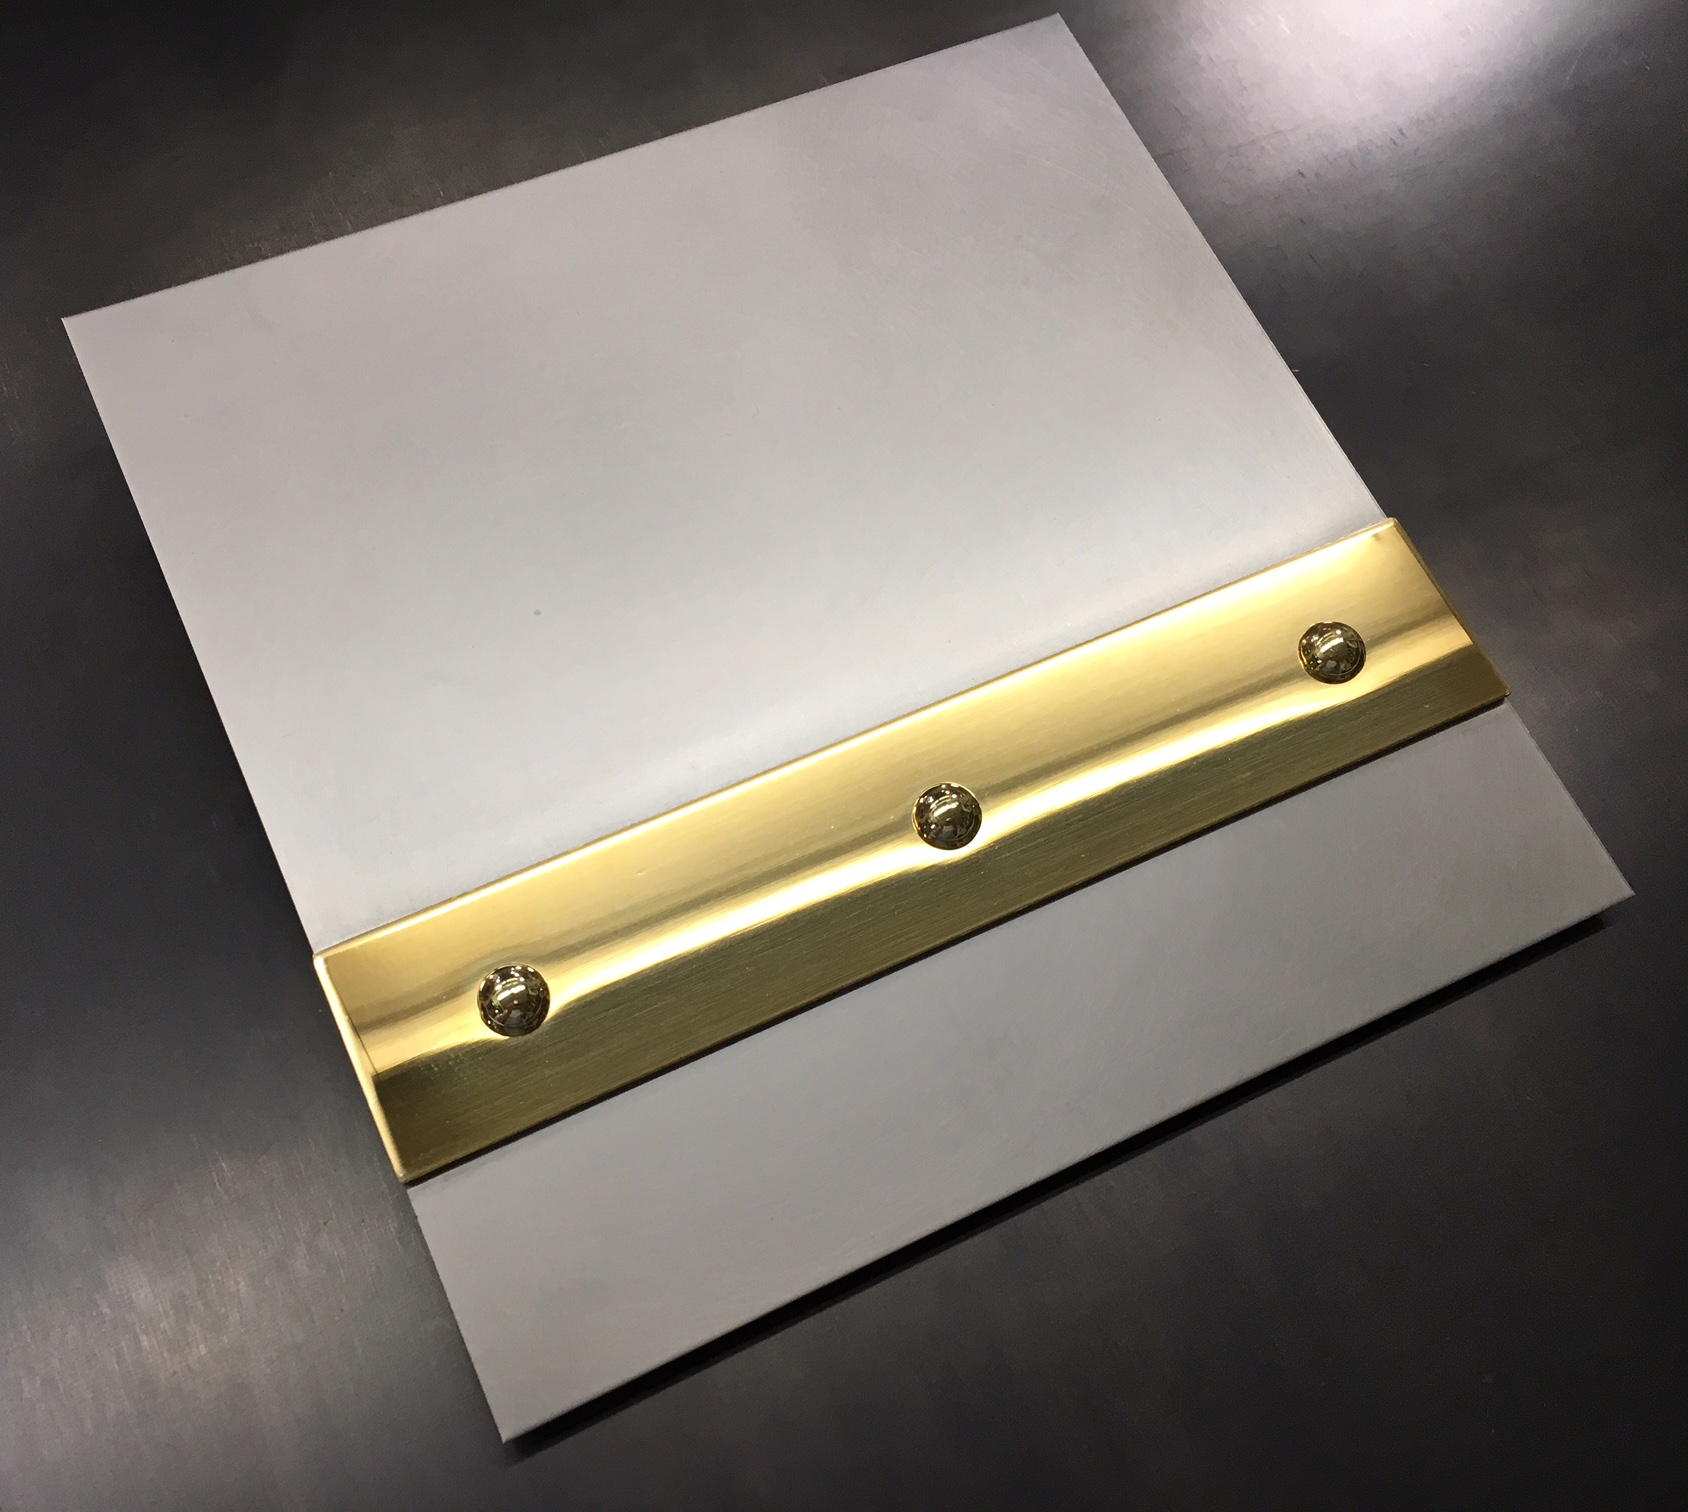 Hand Honed Stainless Brass Mirror Banding